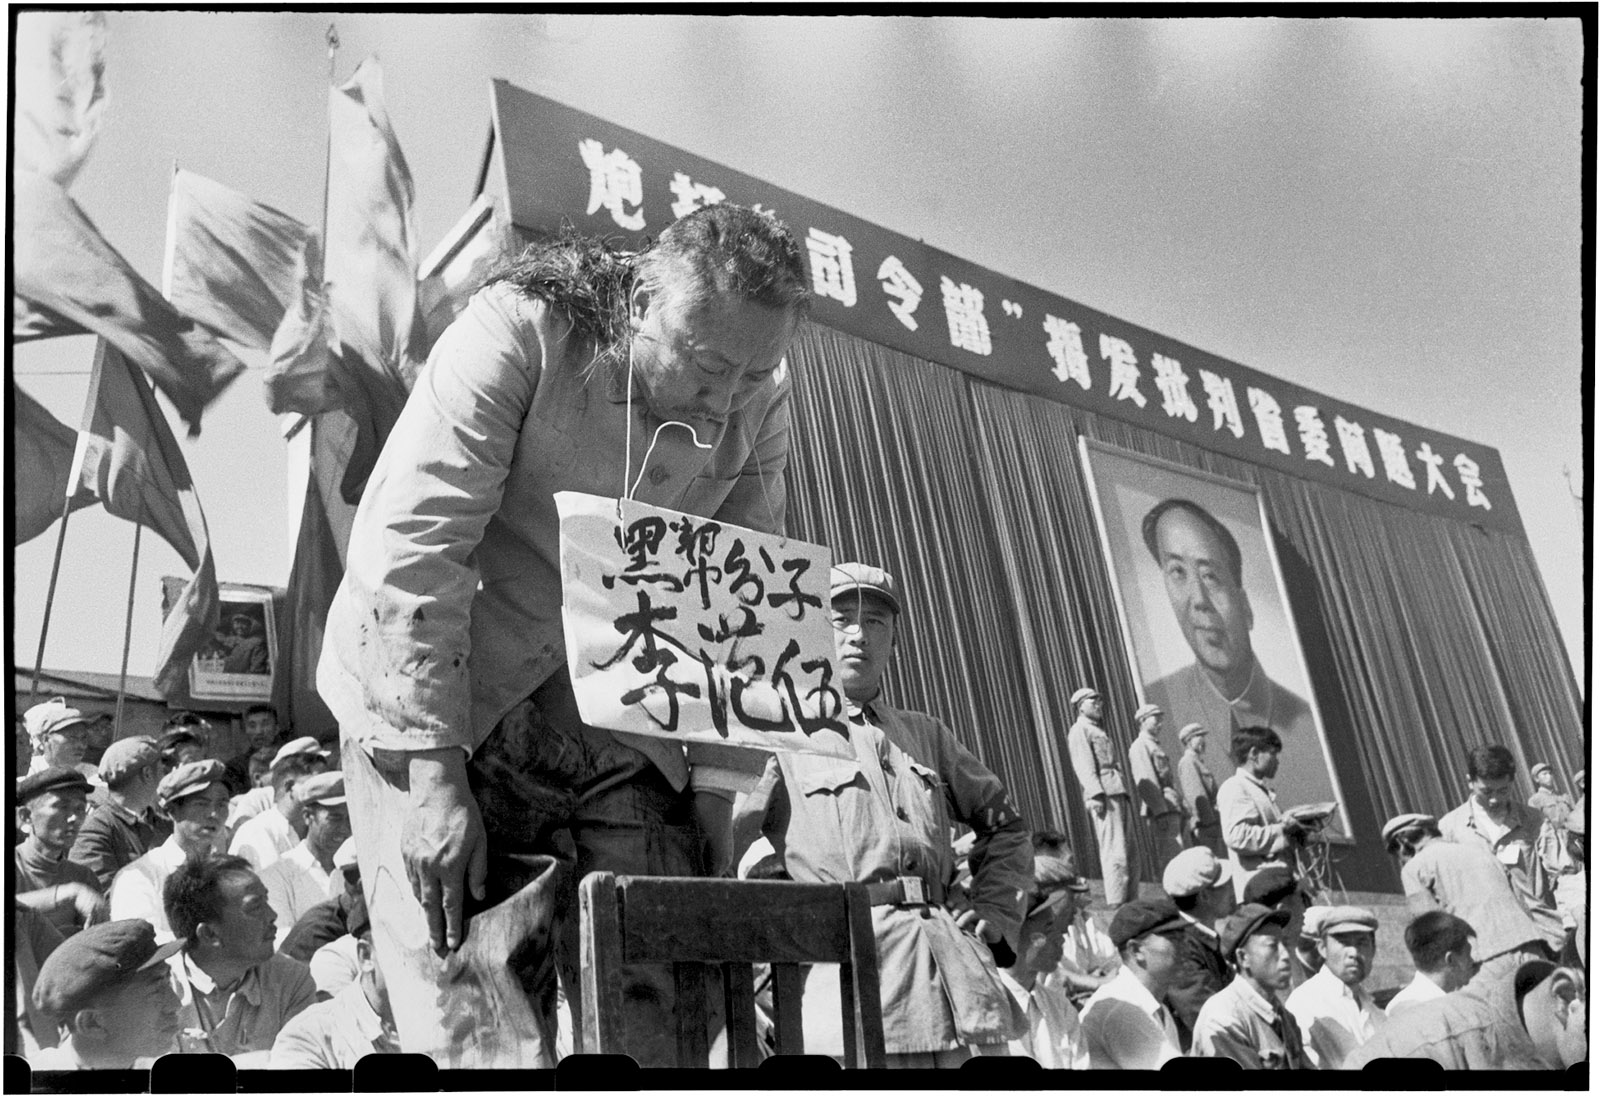 Li Fanwu, the governor of China's Heilongjiang province, being denounced and tortured at a rally in Red Guard Square, Harbin, August 1966. One of his alleged crimes was political ambition, evidence for which was found—according to the photographer Li Zhensheng's book Red-Color News Soldier (2003)—'in his hairstyle, which gave him an ill-fated resemblance to Mao and so was said to symbolize his lust for power.' Two Red Guards chopped and tore out his hair, after which he was made to bow for hours. The banner behind him reads, 'Bombard the Headquarters! Expose and denounce the provincial Party committee.'